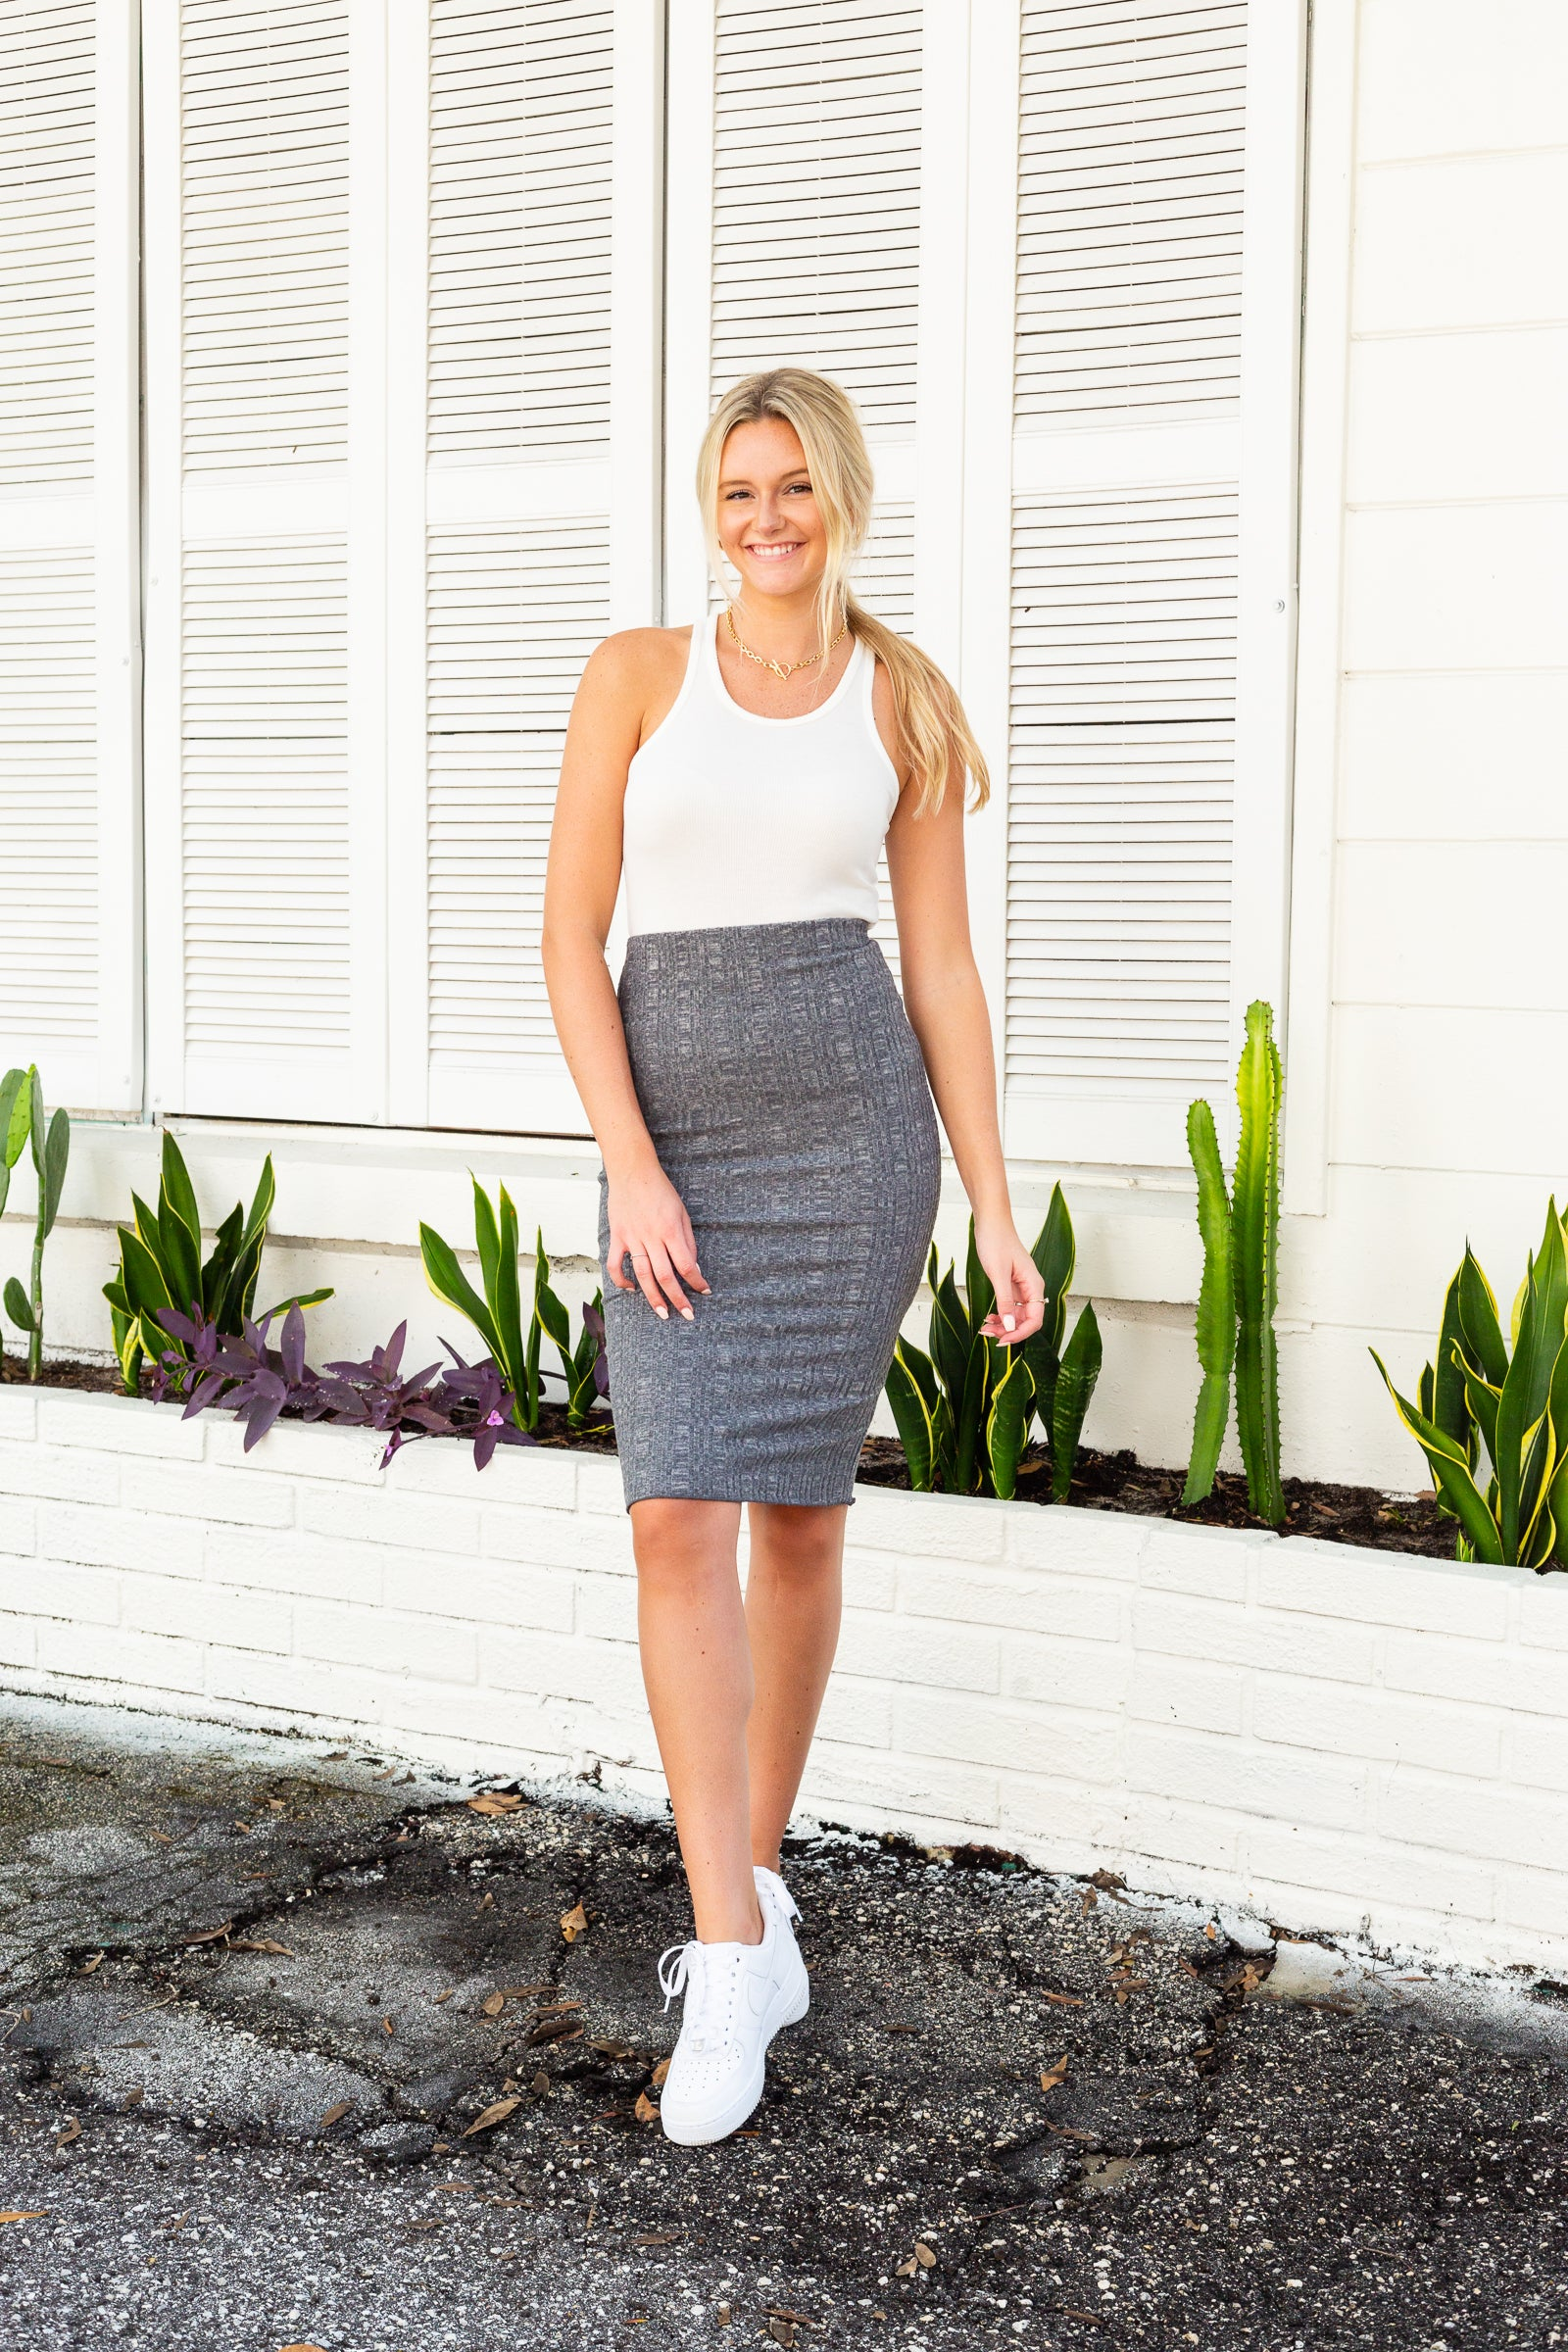 Elastic waistband on a fitted and hip-hugging pencil skirt silhouette with gentle lettuce ruffled hem on the bottom.